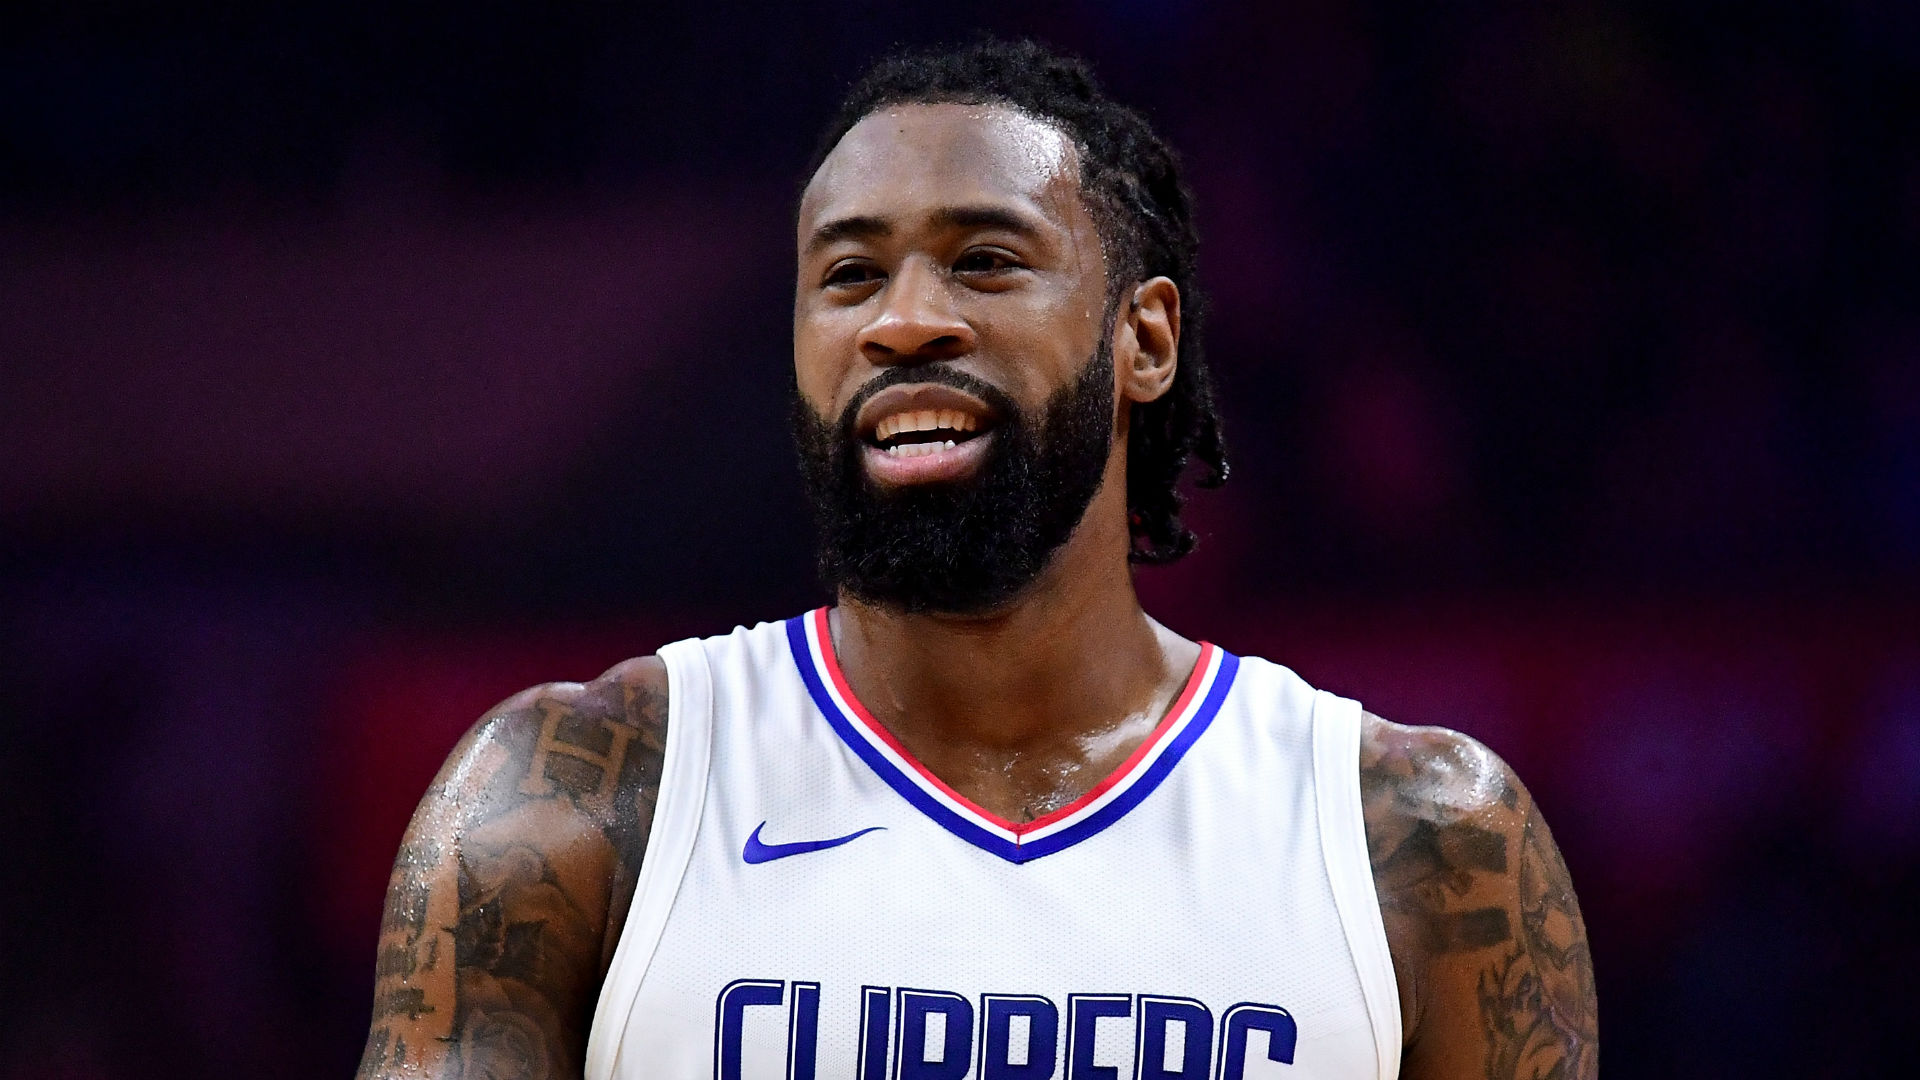 Clippers bid farewell to DeAndre Jordan amid Warriors reports